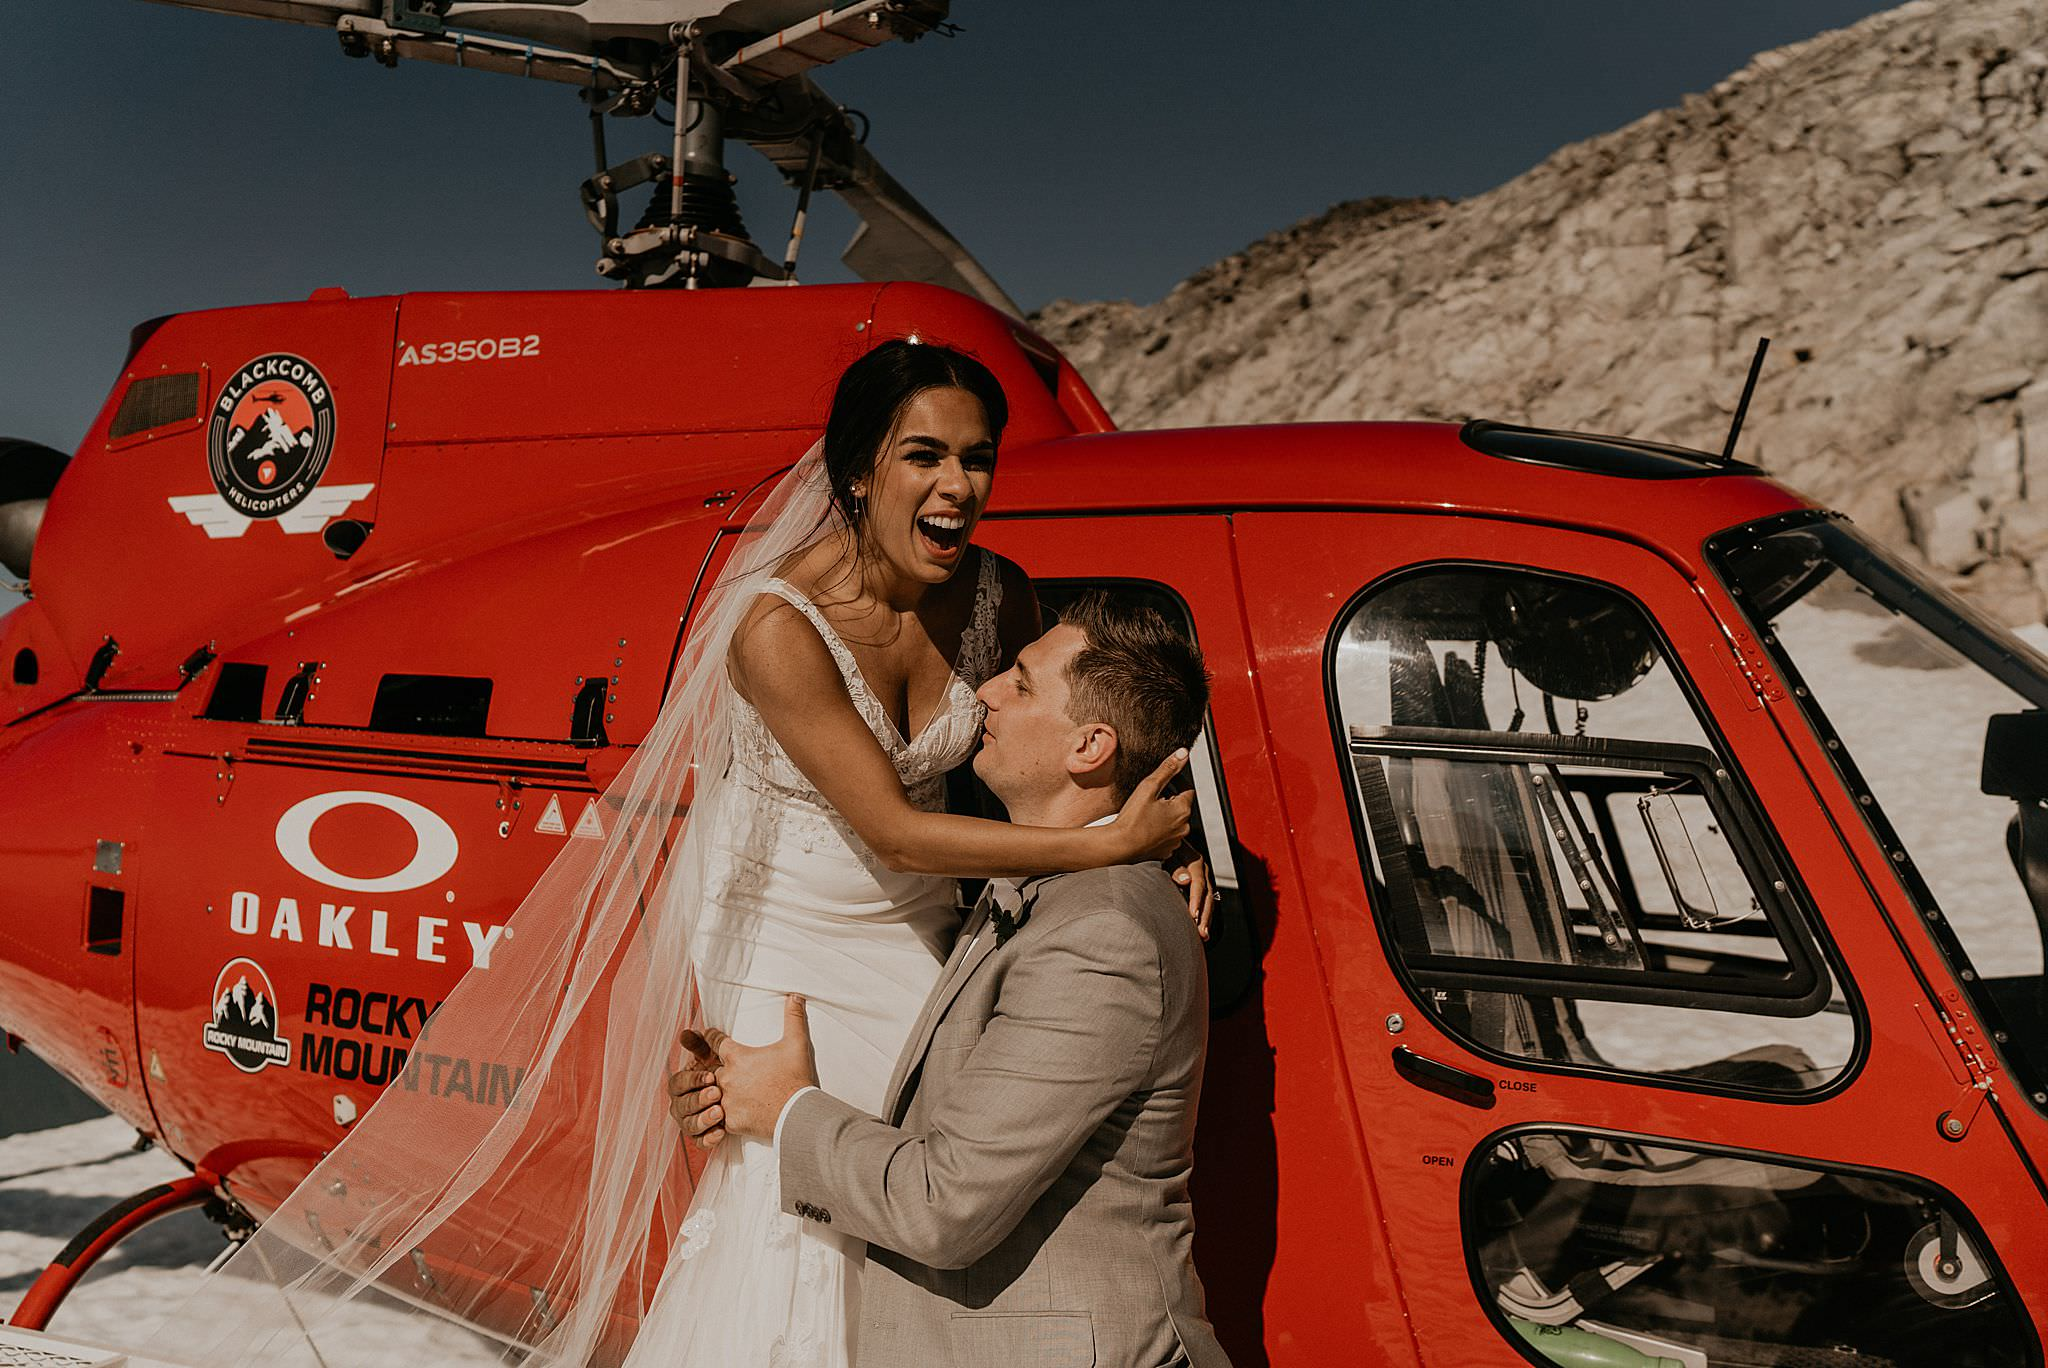 whistler-mountain-helicopter-elopement-wedding_0114.jpg